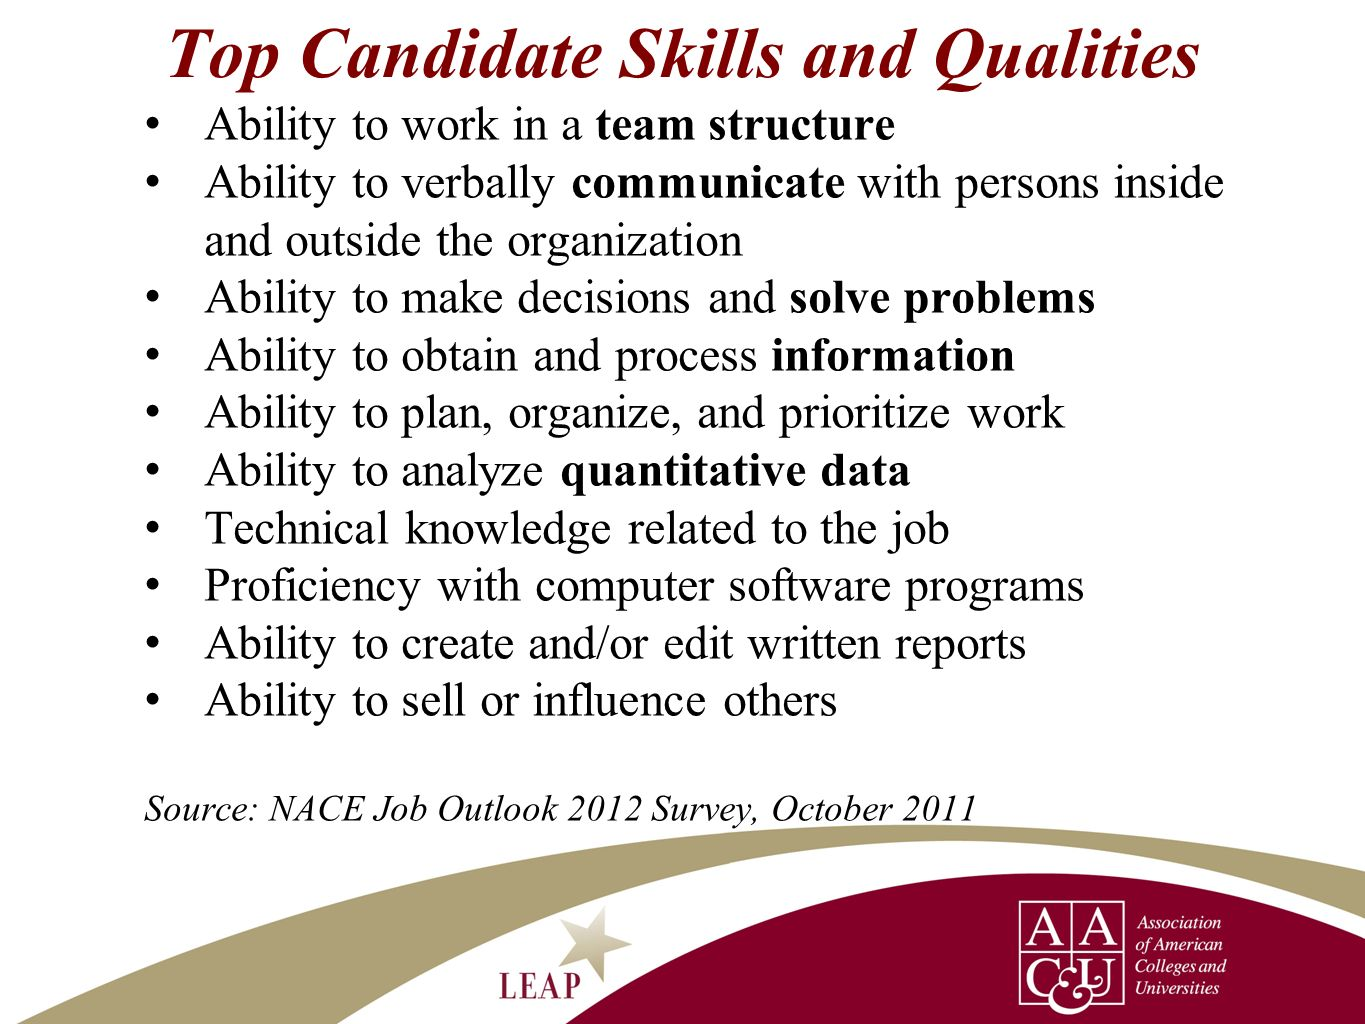 Top Candidate Skills and Qualities